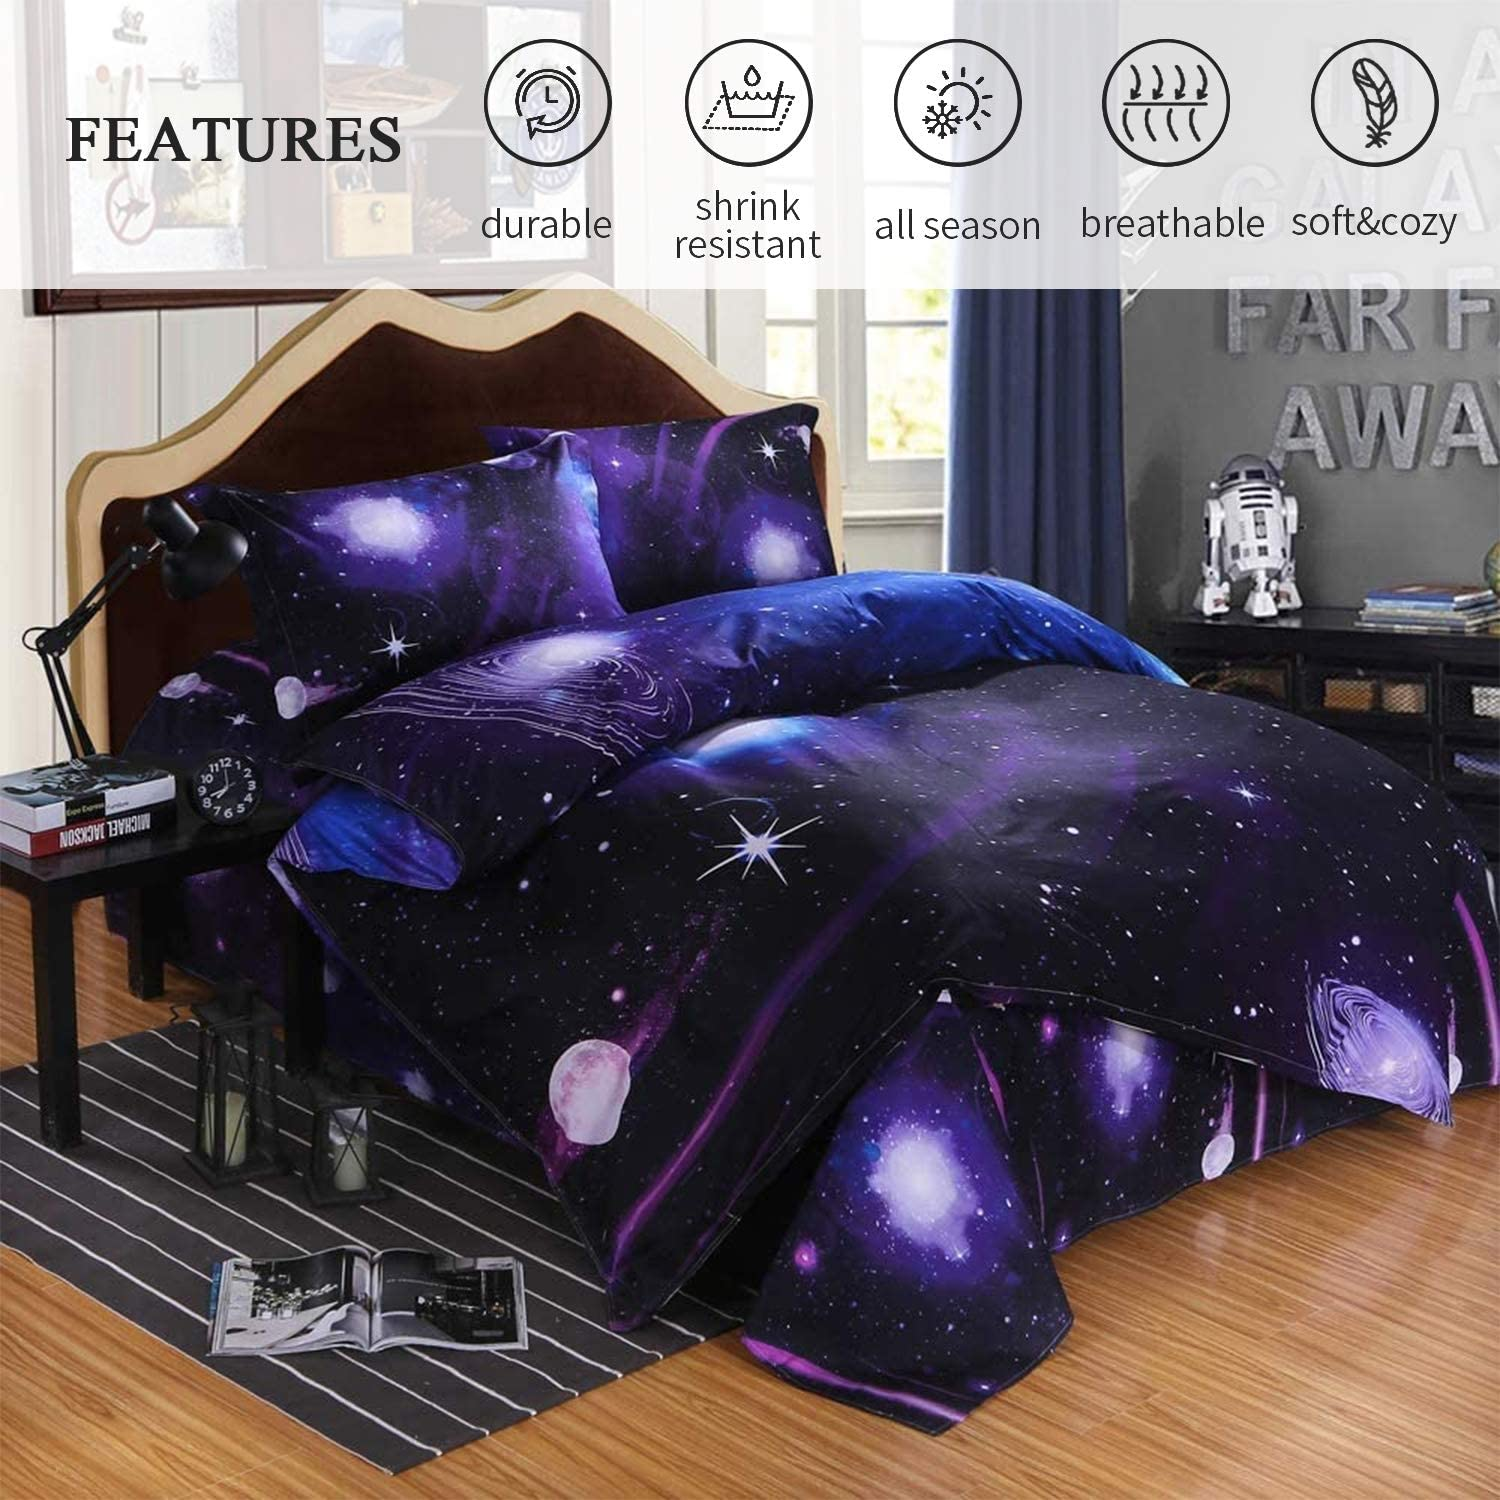 No Comforter,No Fitted Sheet Ammybeddings 4 PCs Full Size 3D Charming Galaxy Print Bedding Sets 1 Space Duvet Cover 2 Pillow Shams and 1 Flat Sheet Soft Stylish Home Decor Bed Set for Kids